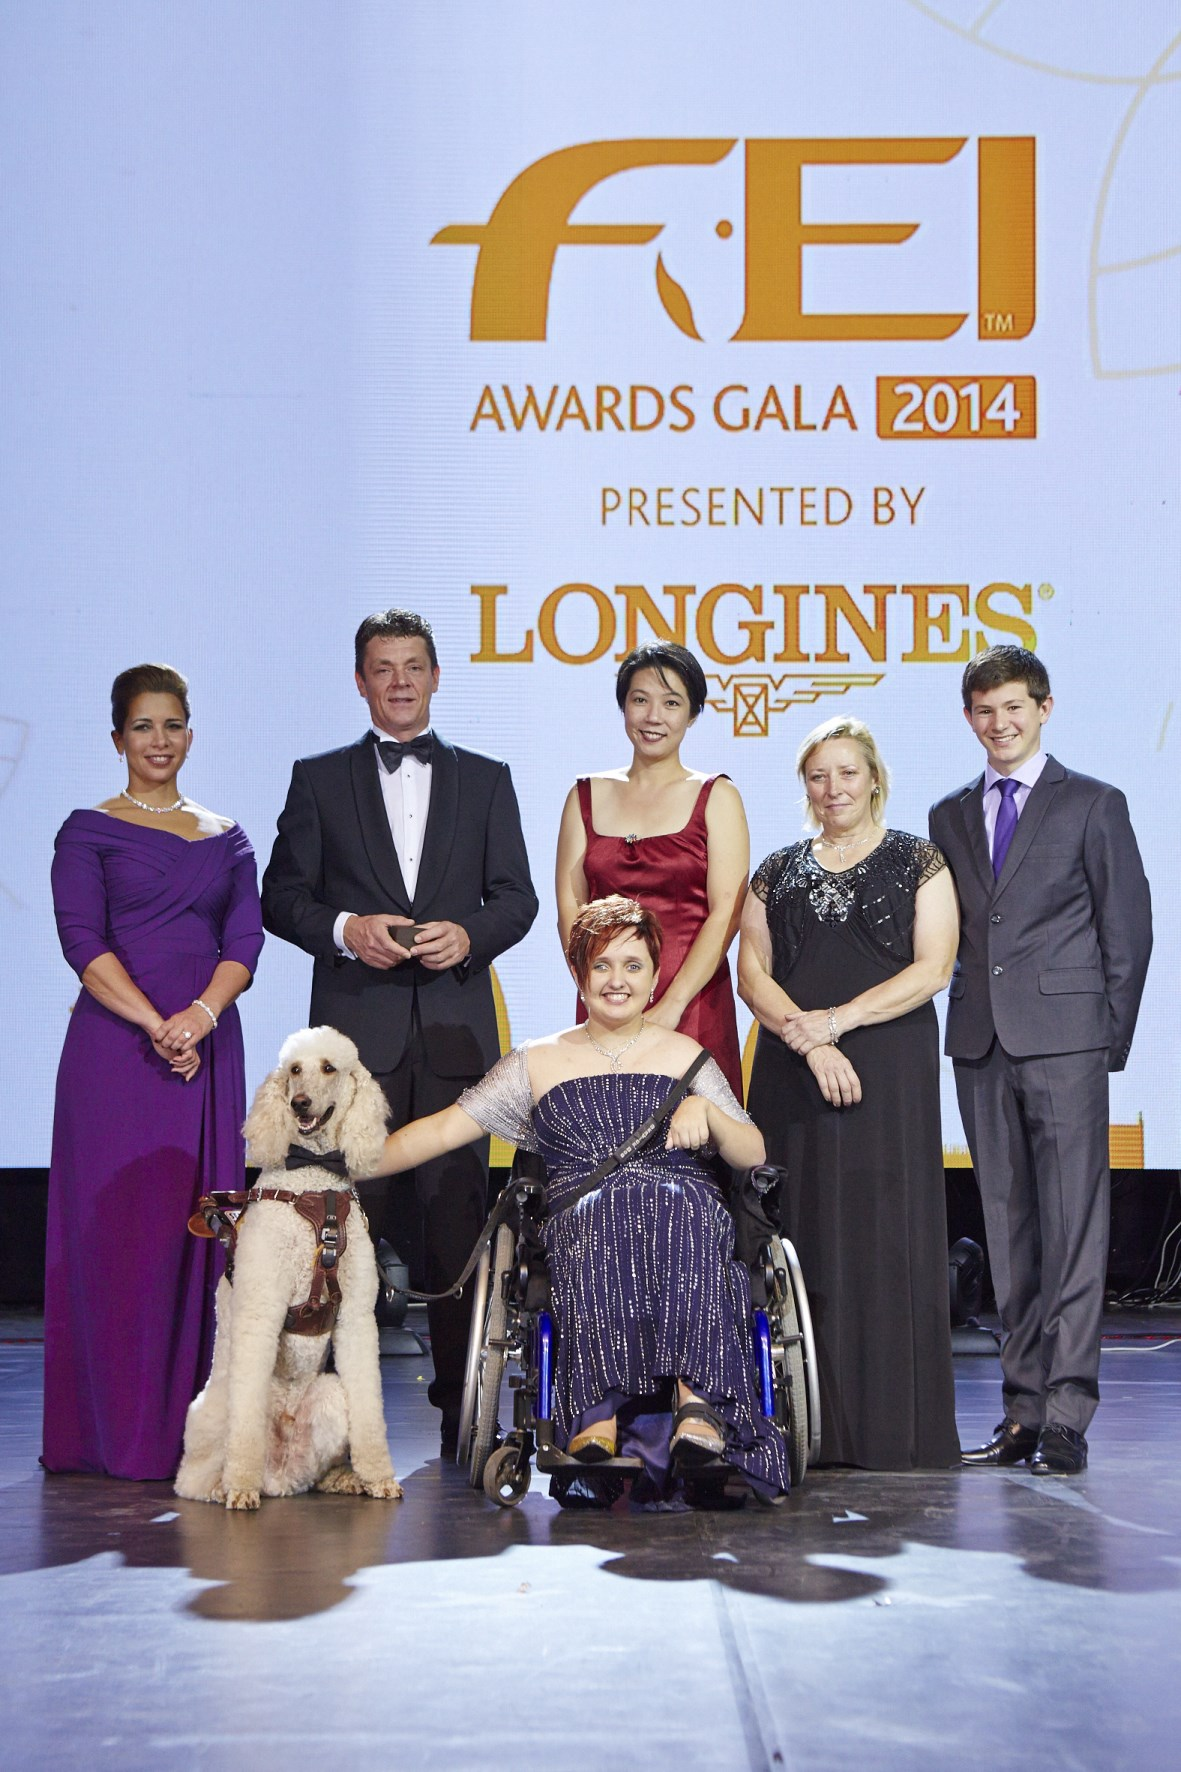 Sydney Collier and her service dog Journey were among the winners at the 2014 International Equestrian Federation Awards Gala ©FEI